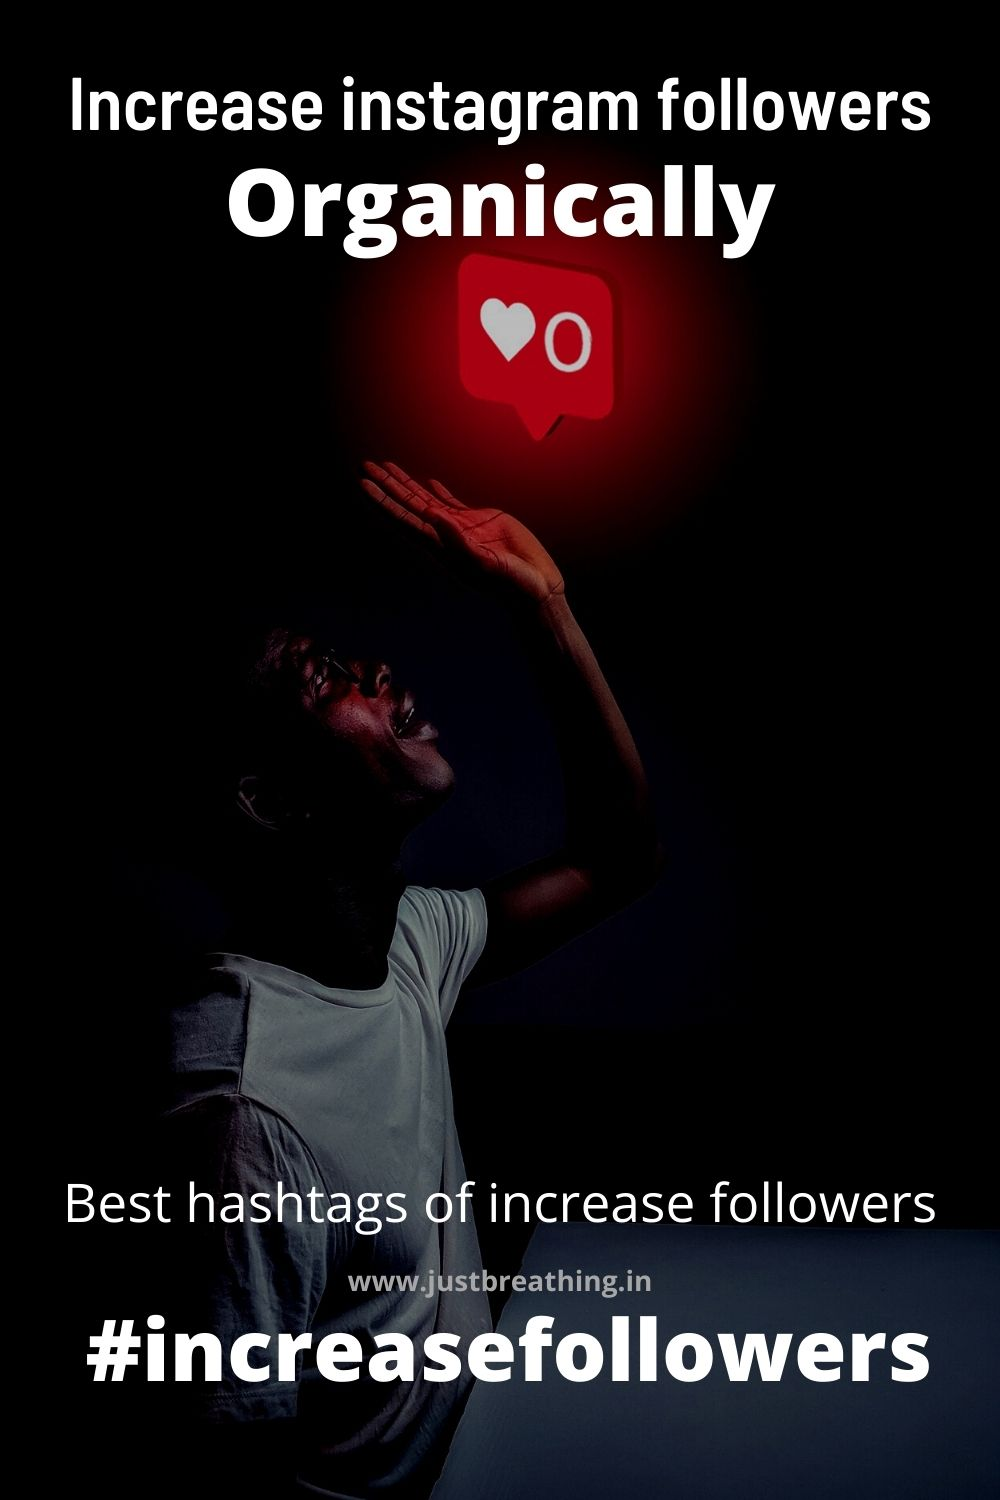 increase Instagram followers organically. Best hashtags of increase followers - #increasefollowers.jpg